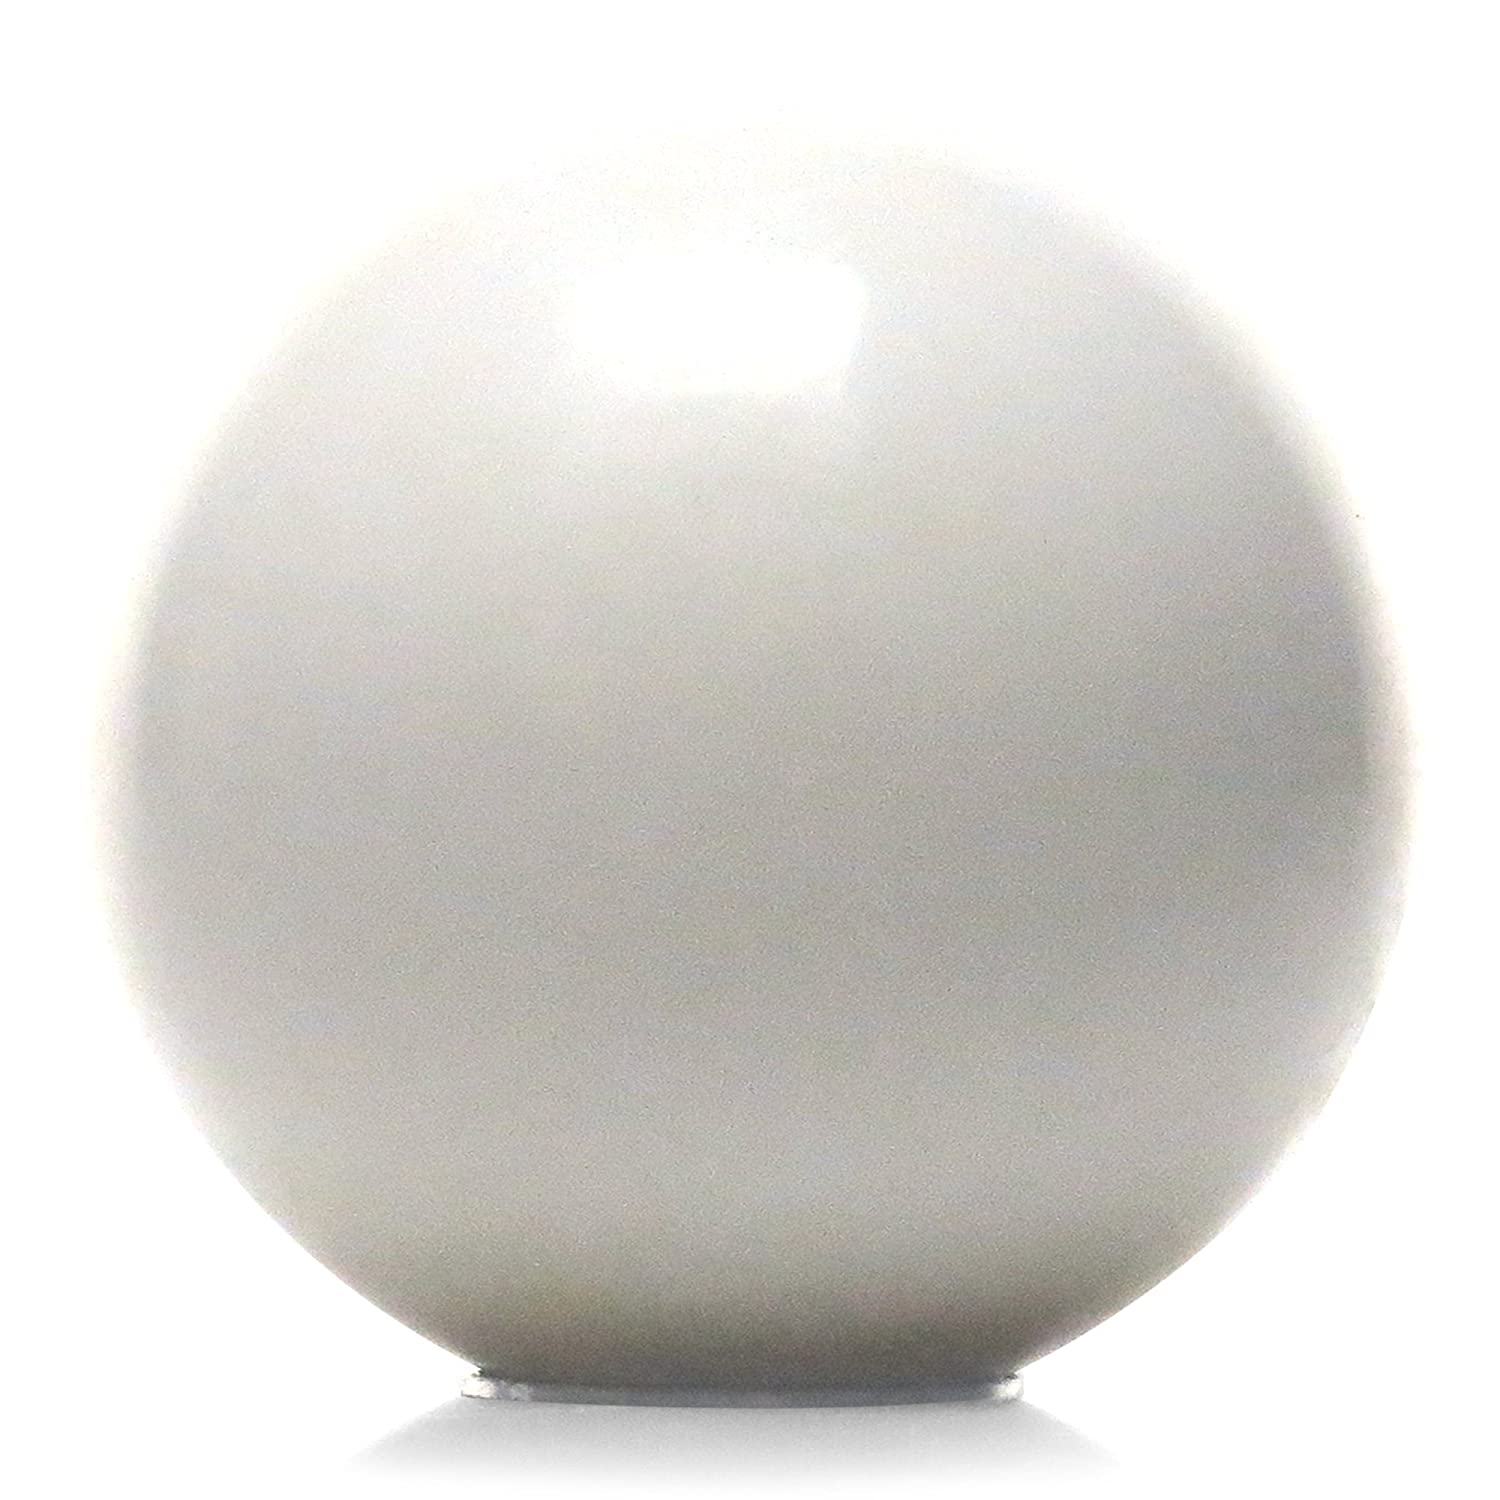 White Shifty American Shifter 77329 Ivory Shift Knob with M16 x 1.5 Insert